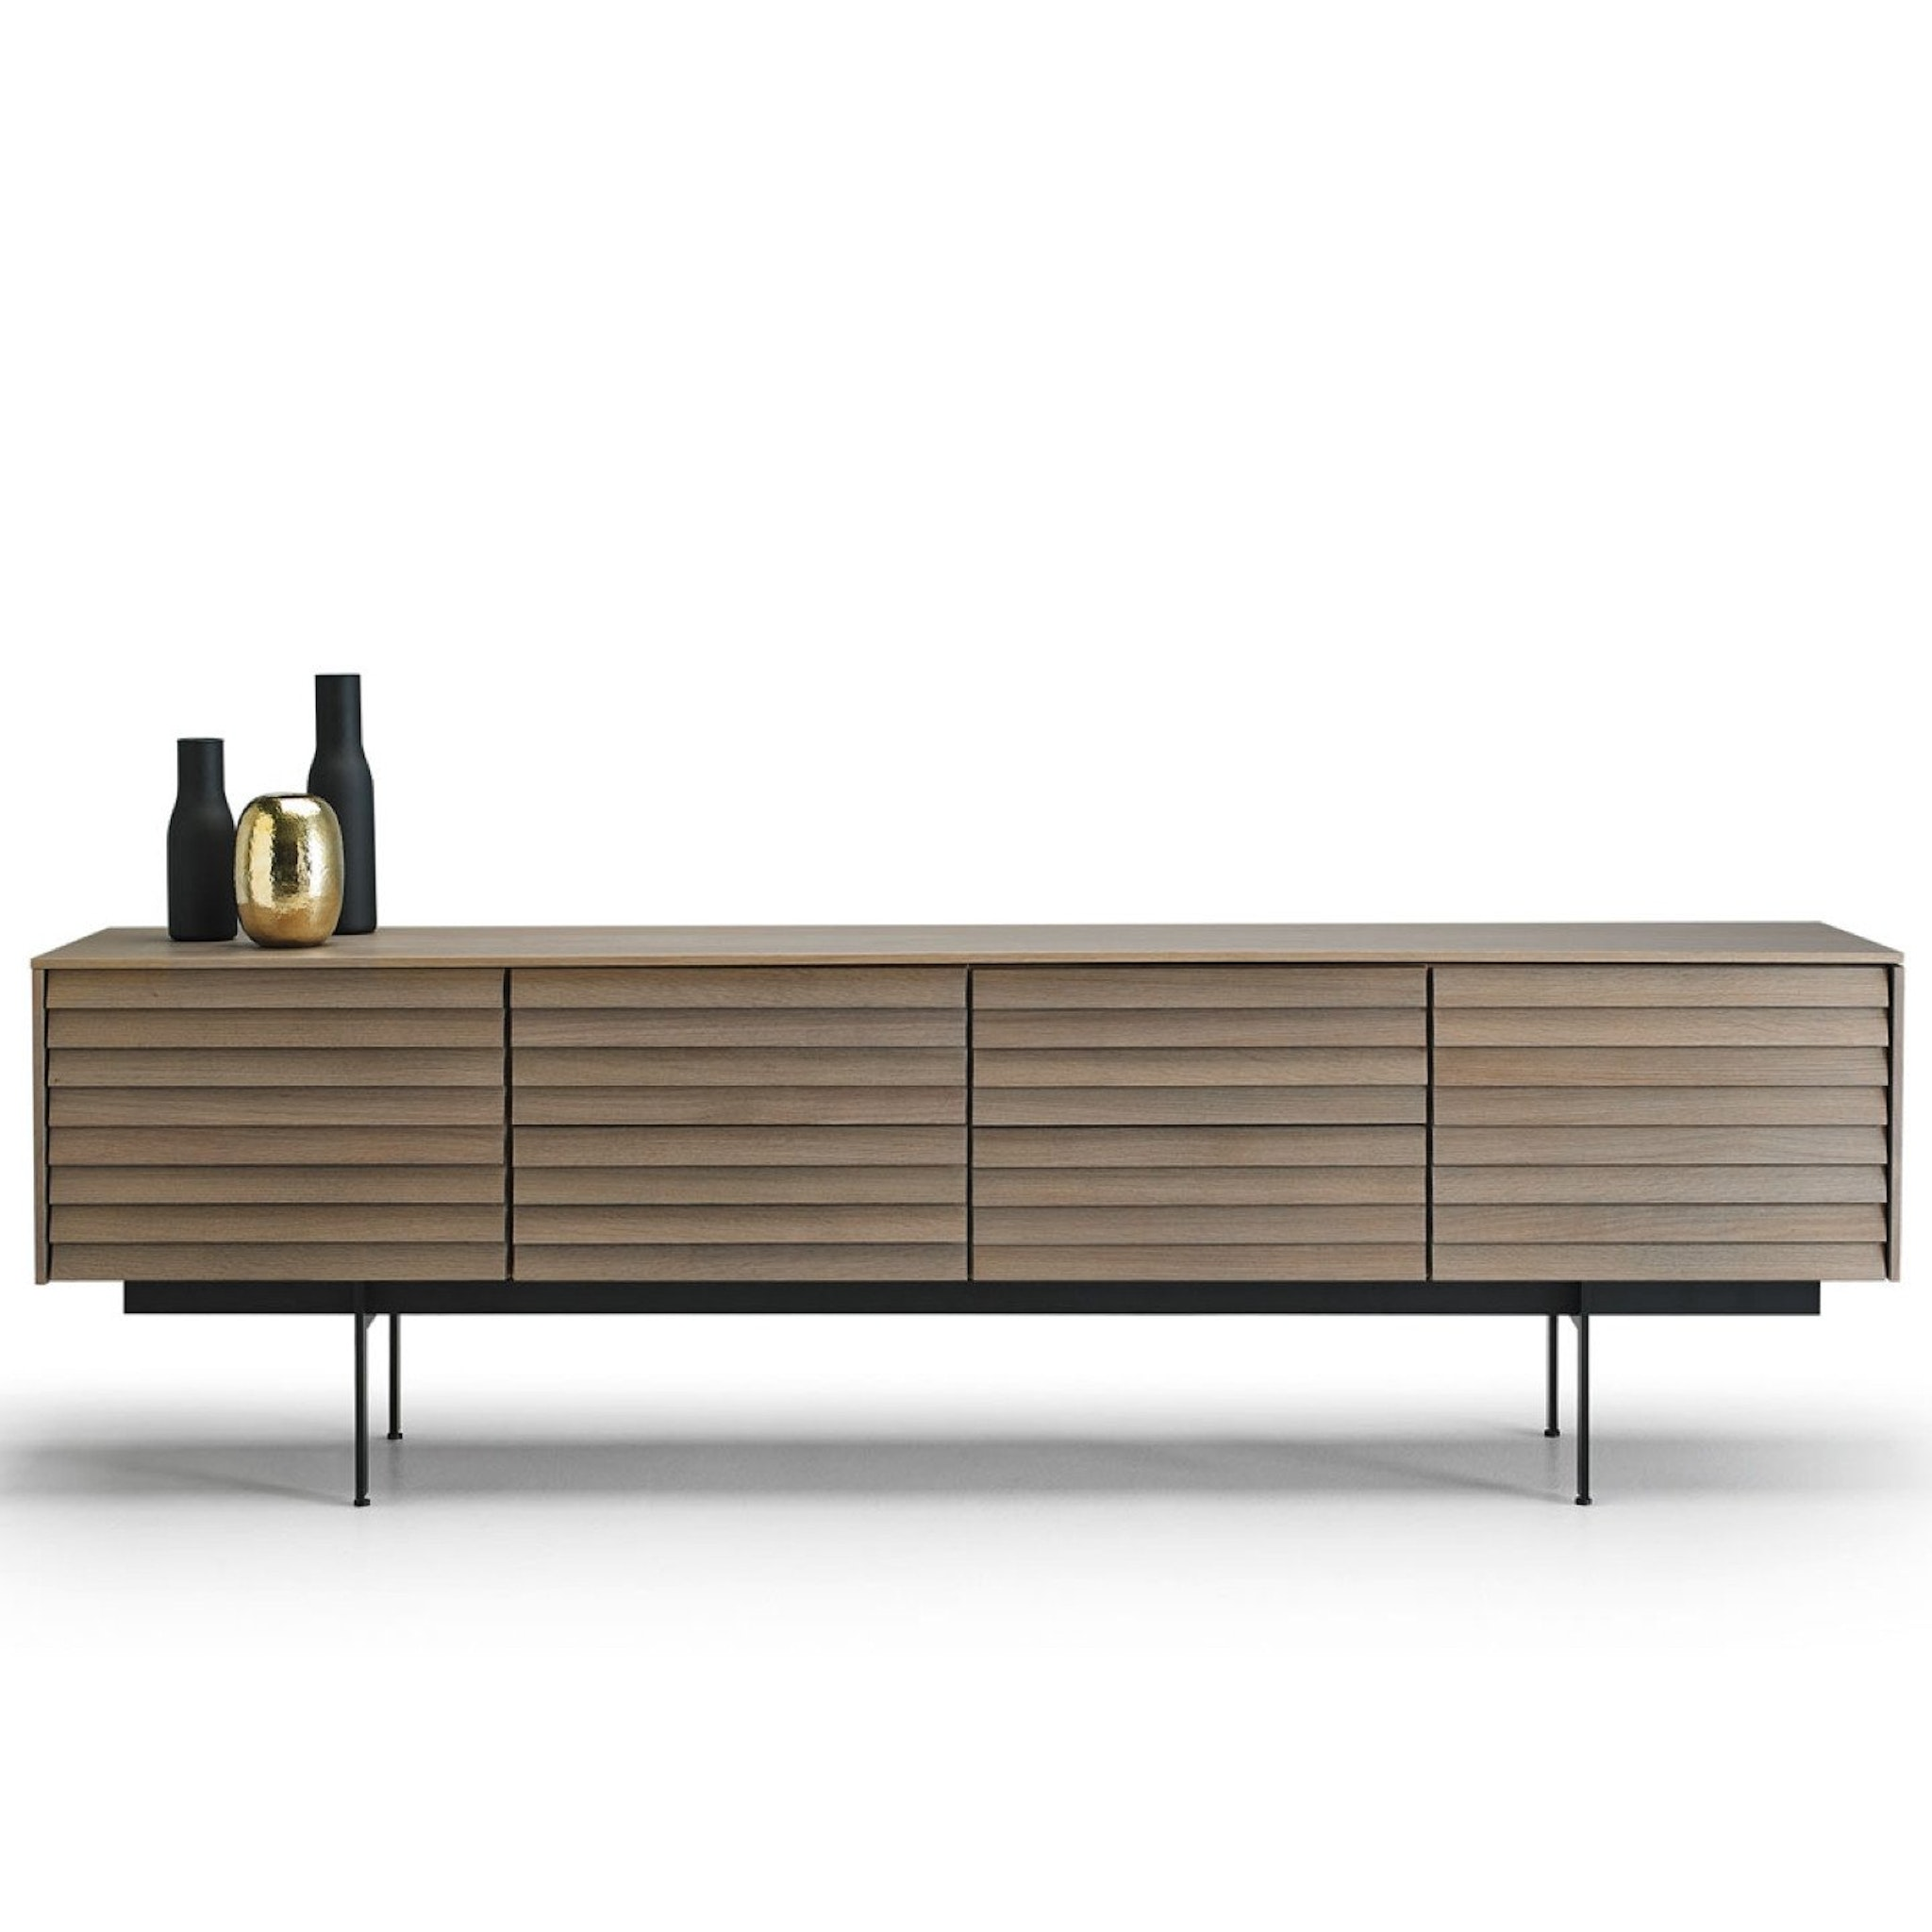 Sussex Sideboard by Terence Woodgate